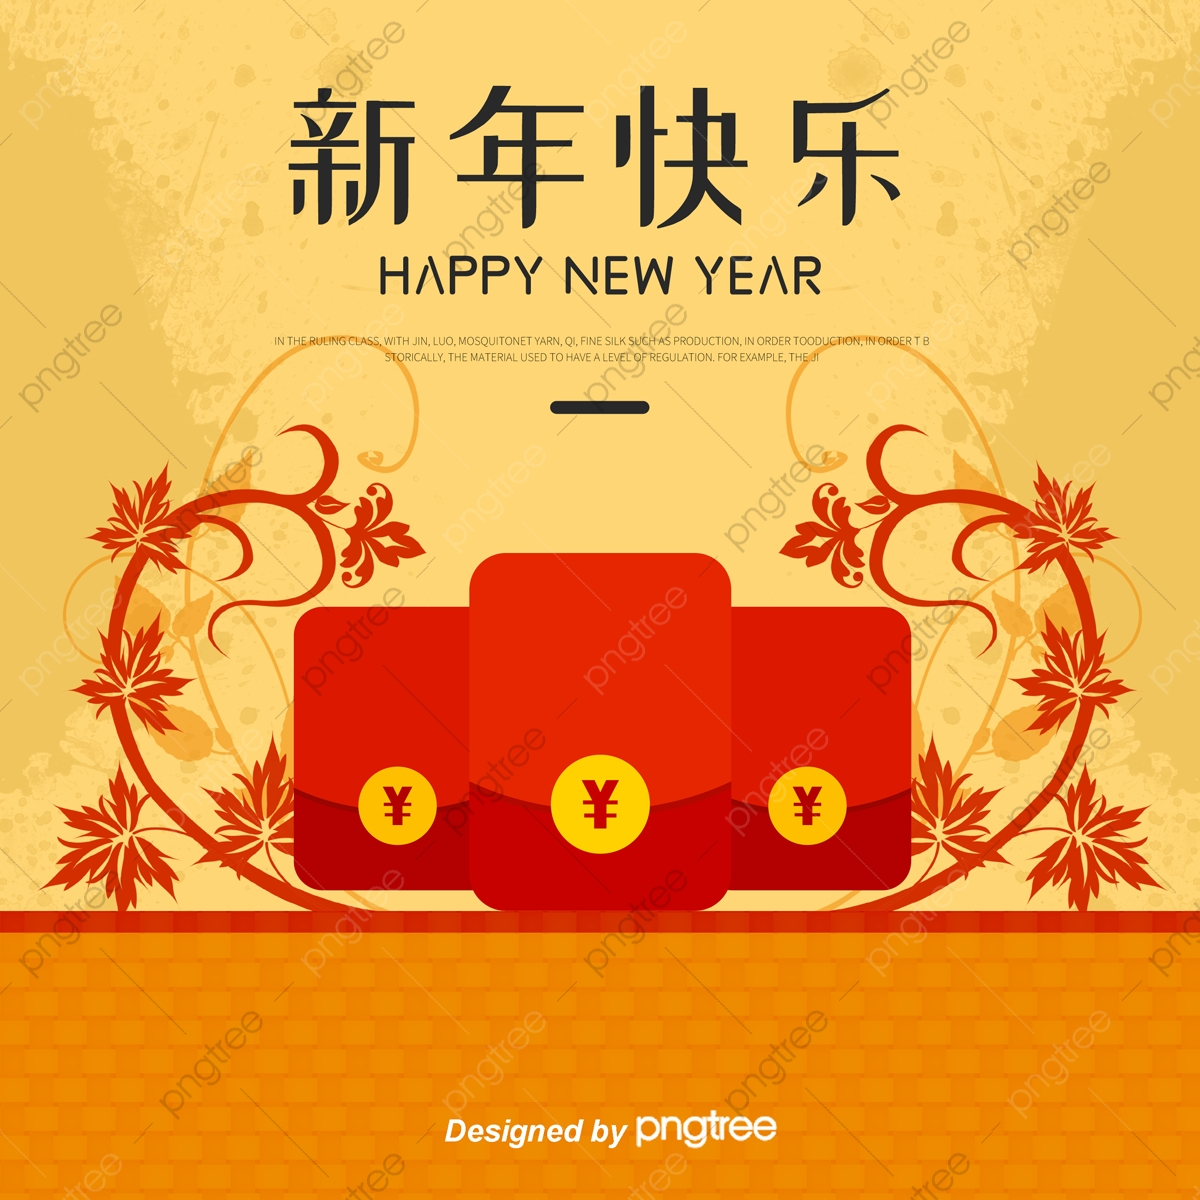 Happy New Year Calligraphy Font New Vector Red Chinese